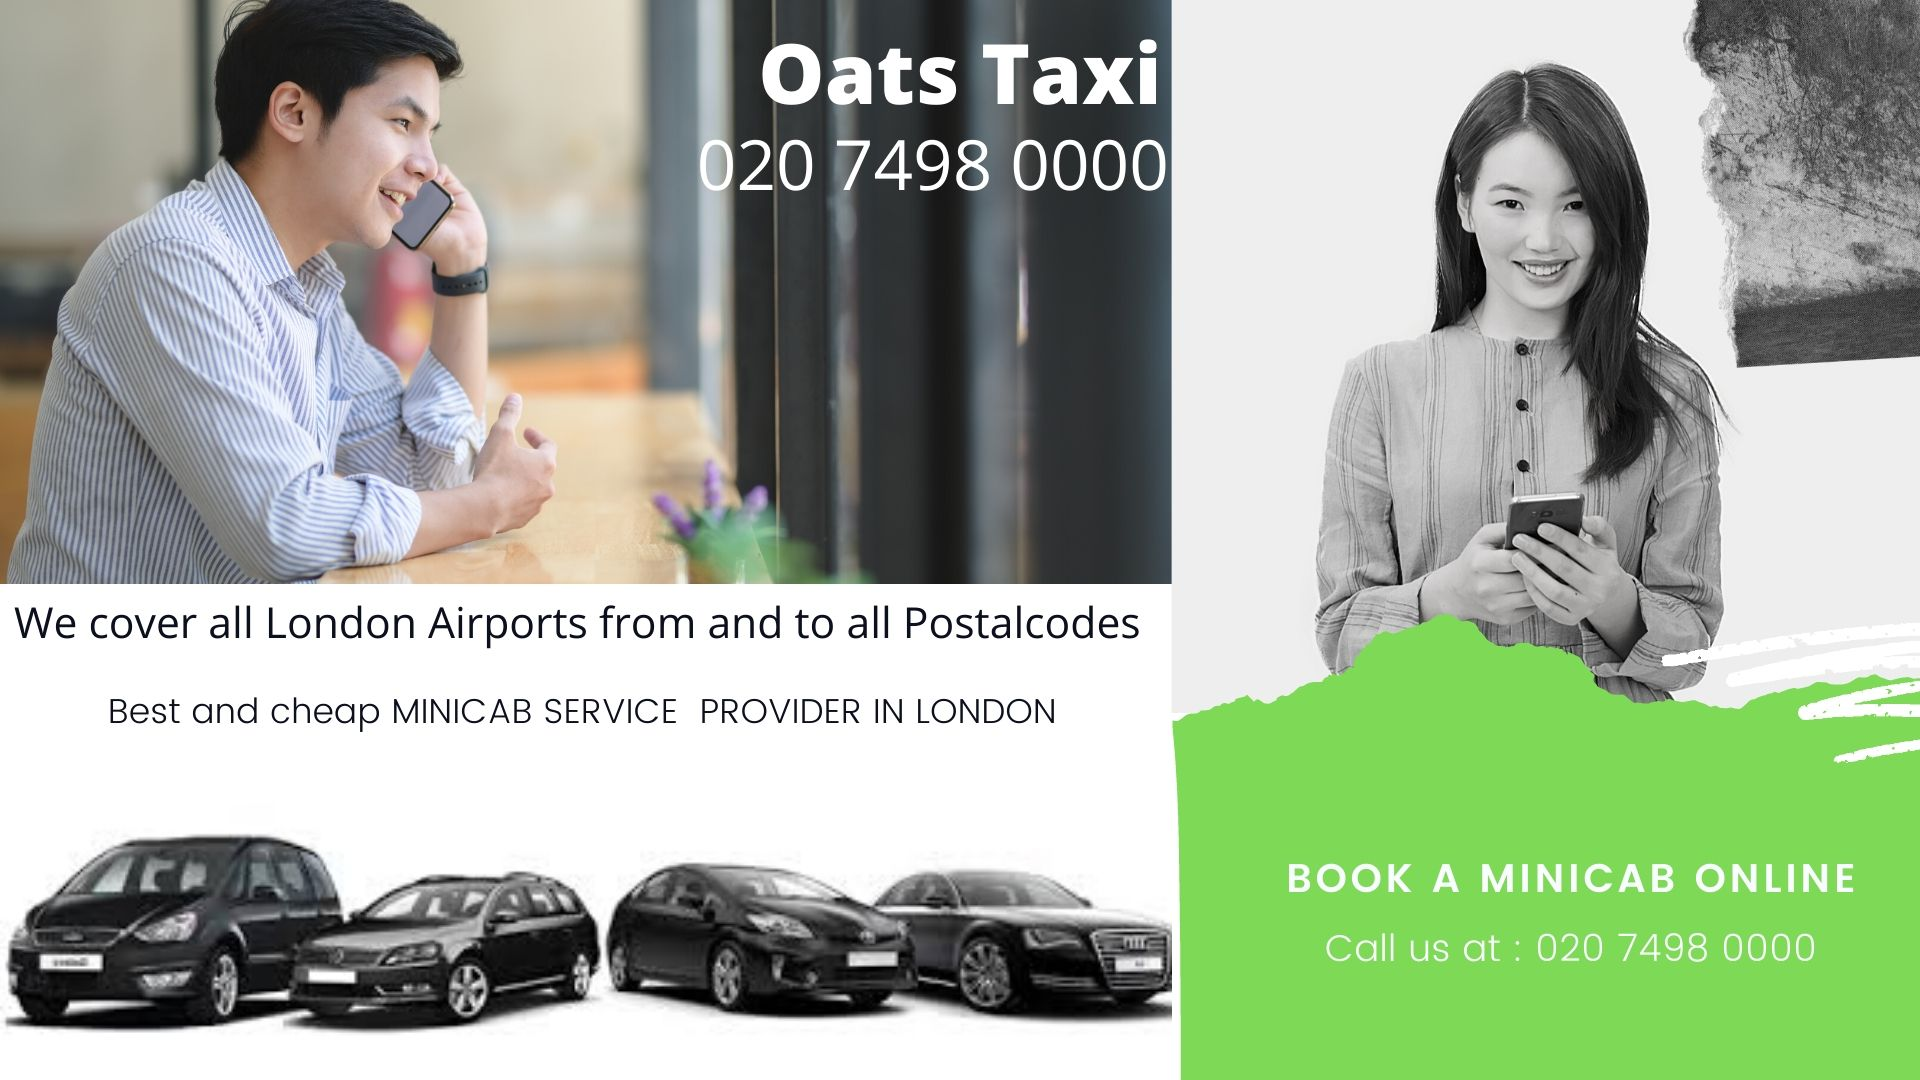 Minicab Near BEVERLEY CLOSE, Battersea SW11, Minicab From Battersea SW11 To Gatwick Airport